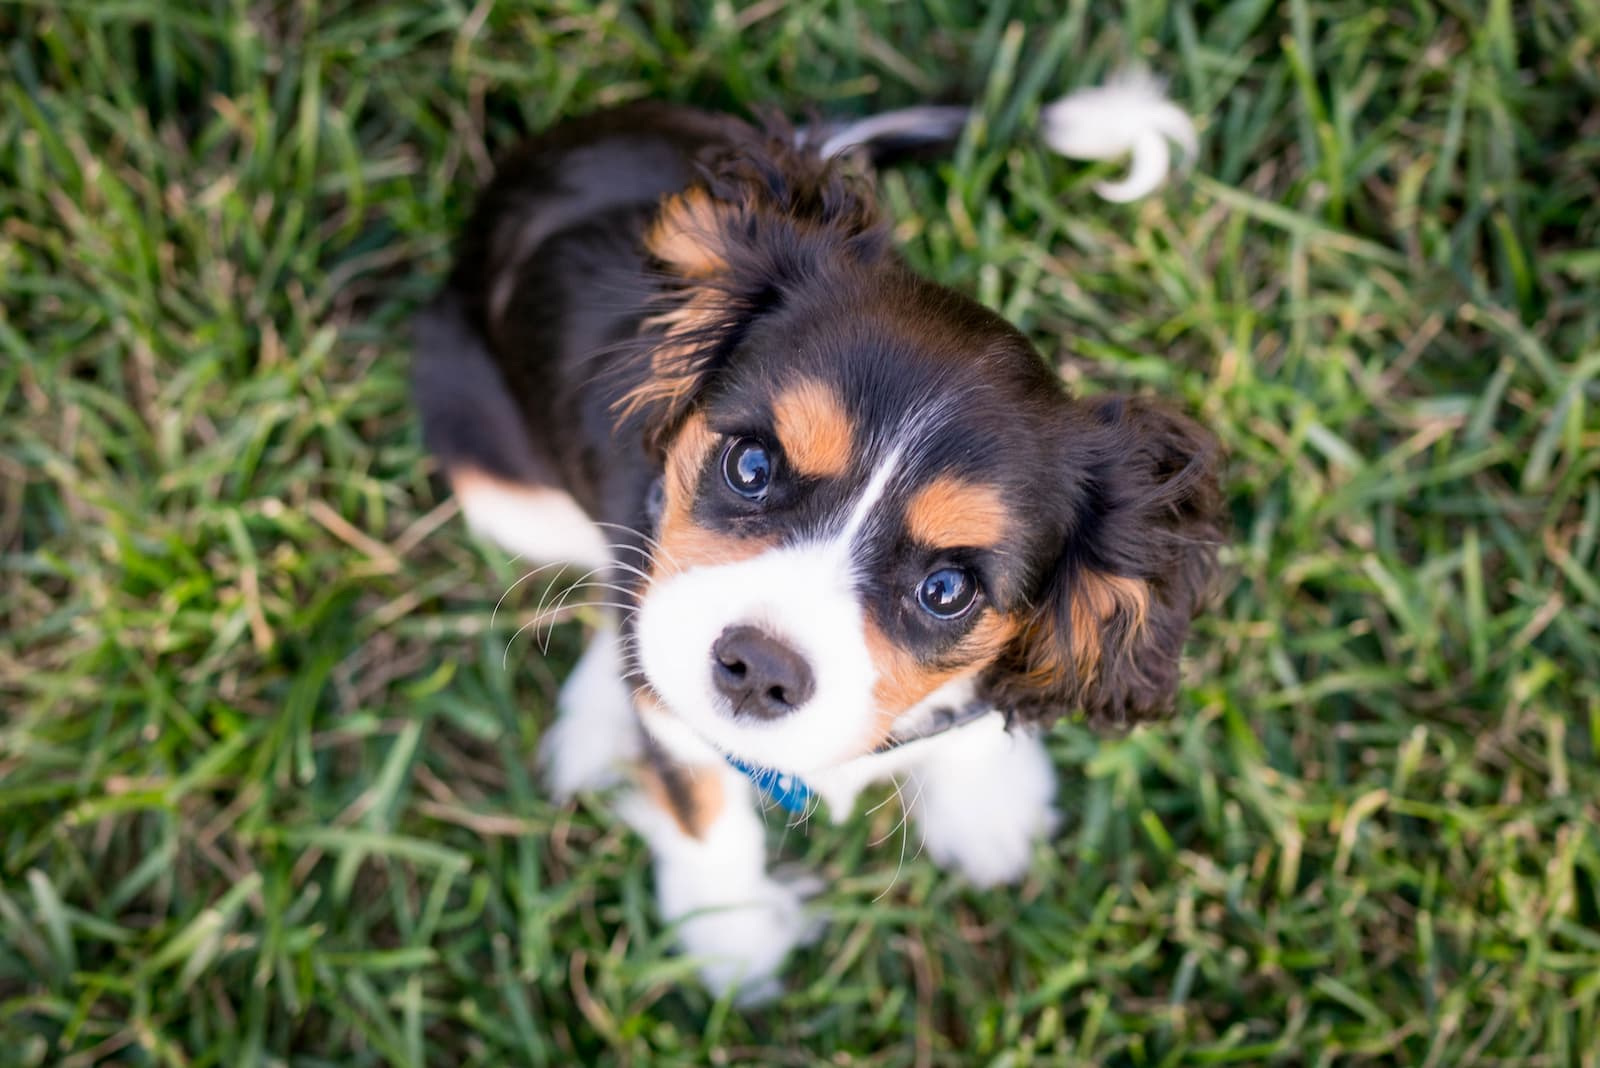 A cute puppy smiling at the camera.